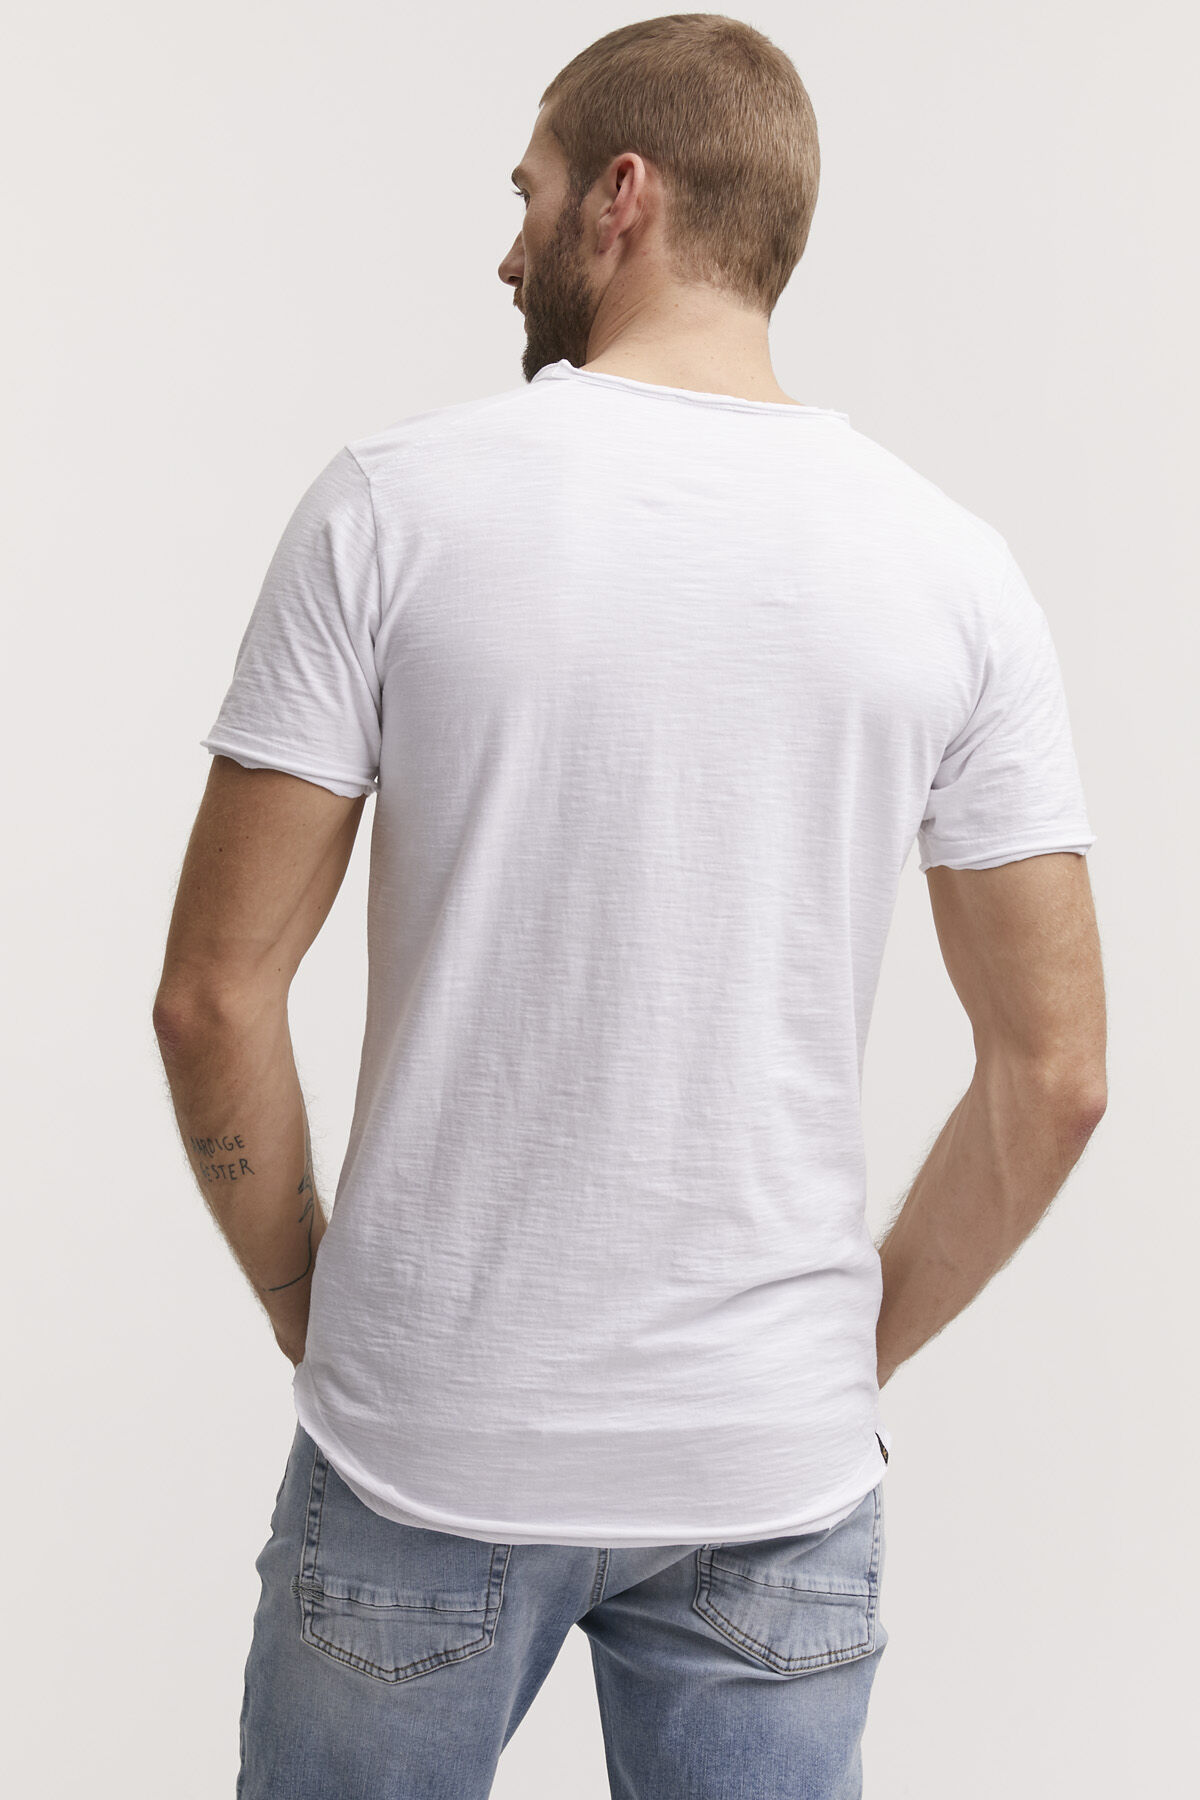 INGO RAW EDGE TEE Slub Cotton - Slim Fit